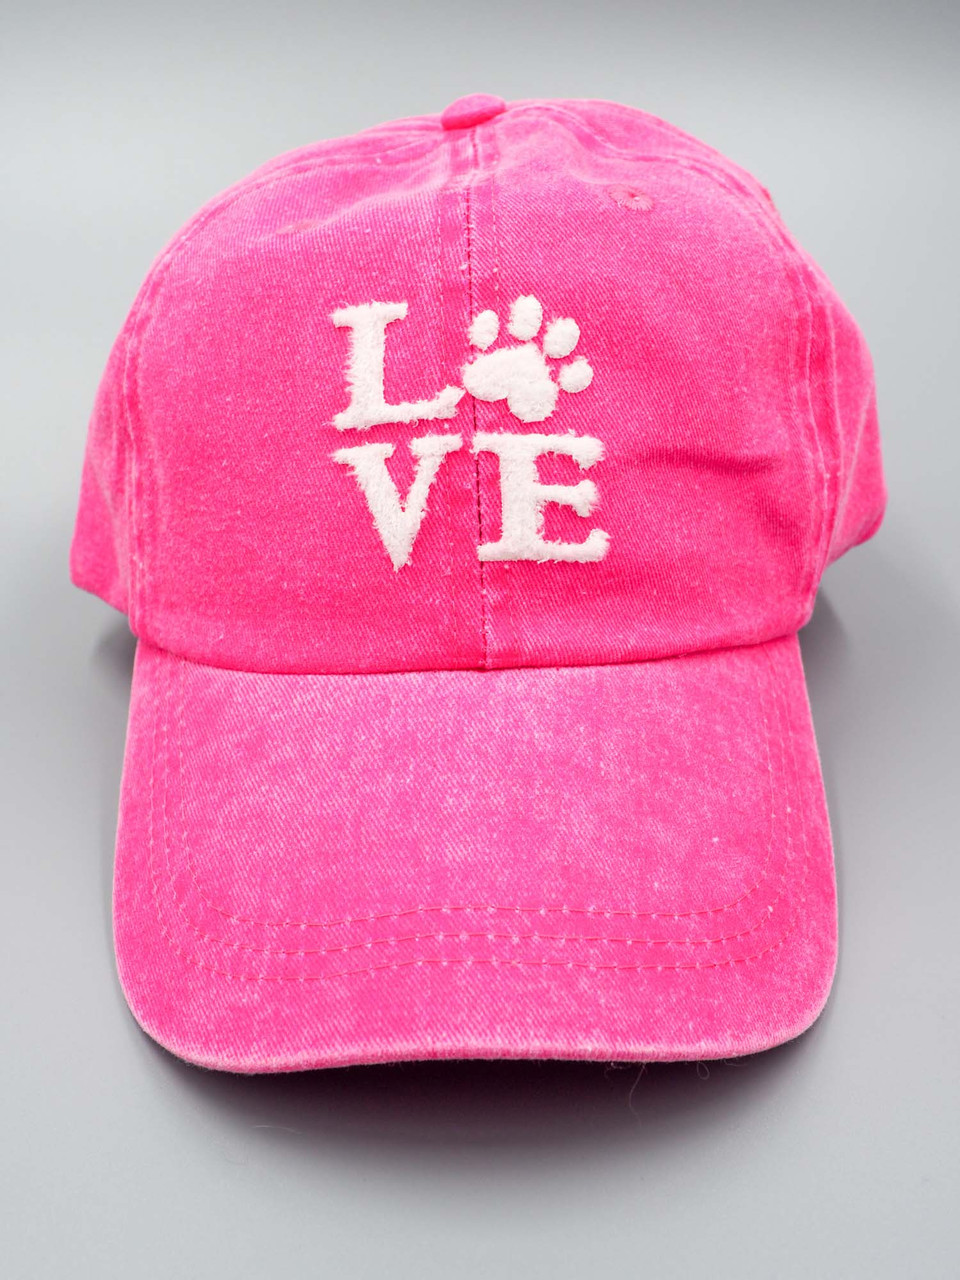 Vintage pink dog paw baseball cap alabama girl